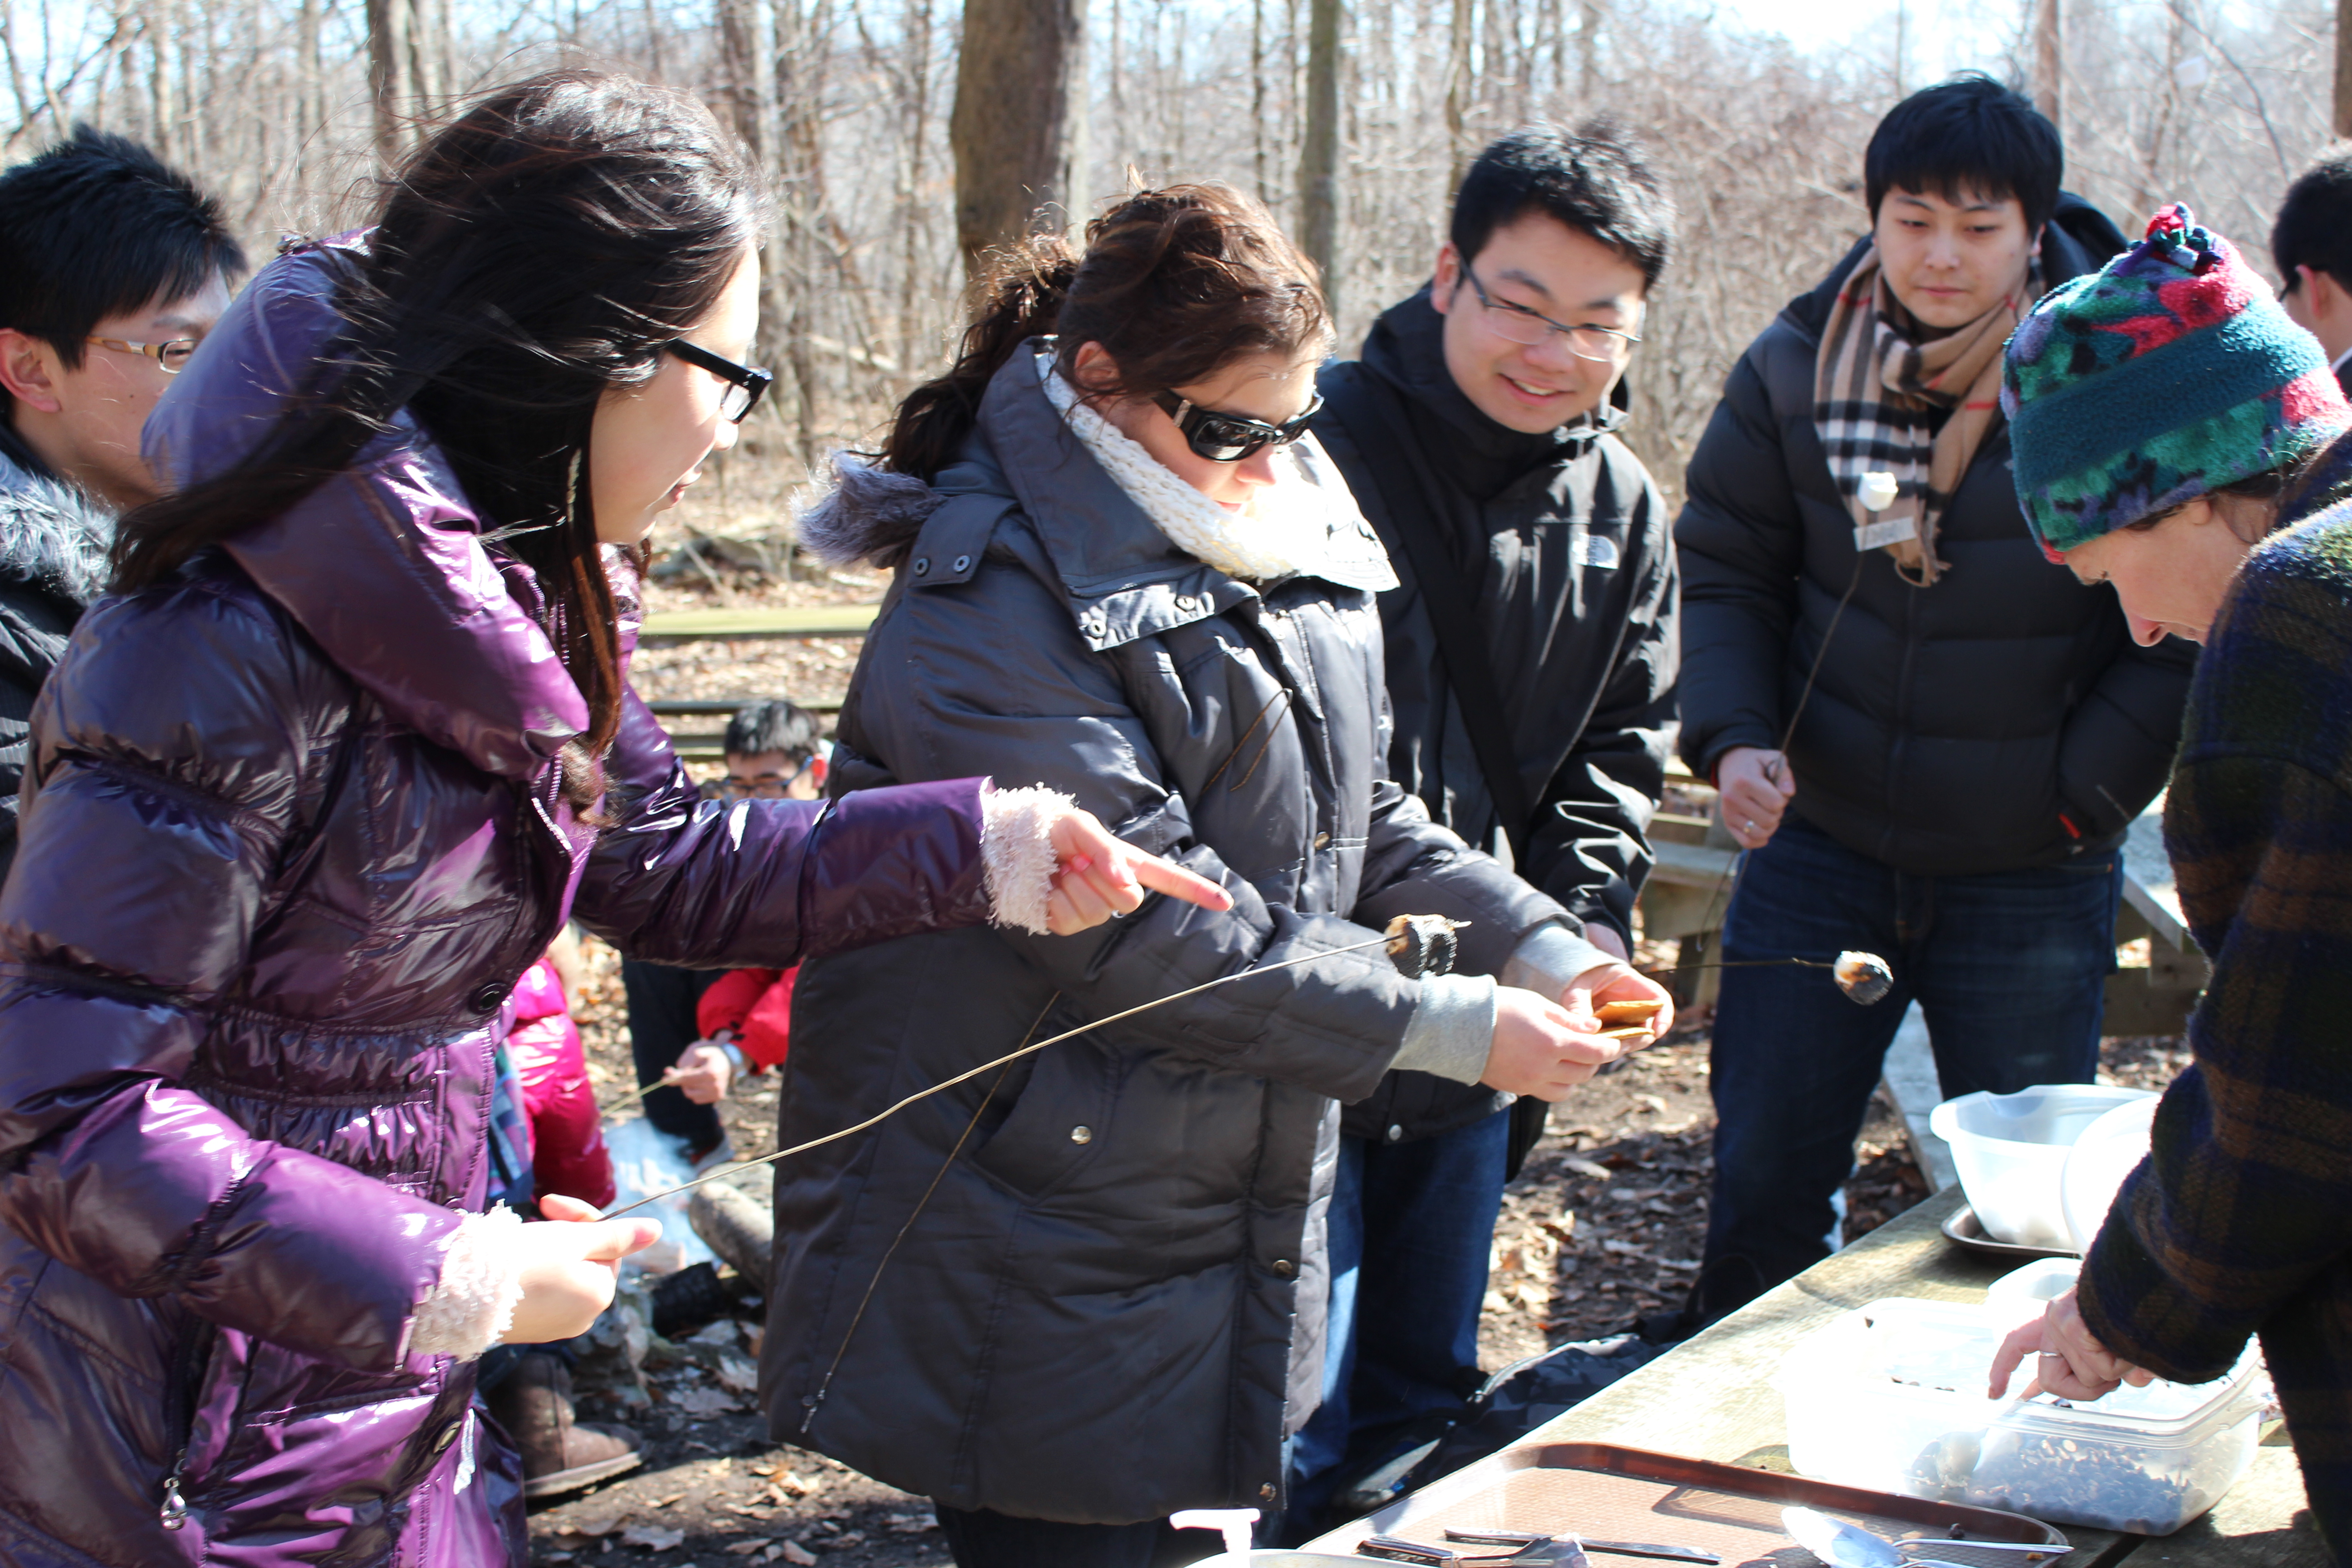 Students make S'mores